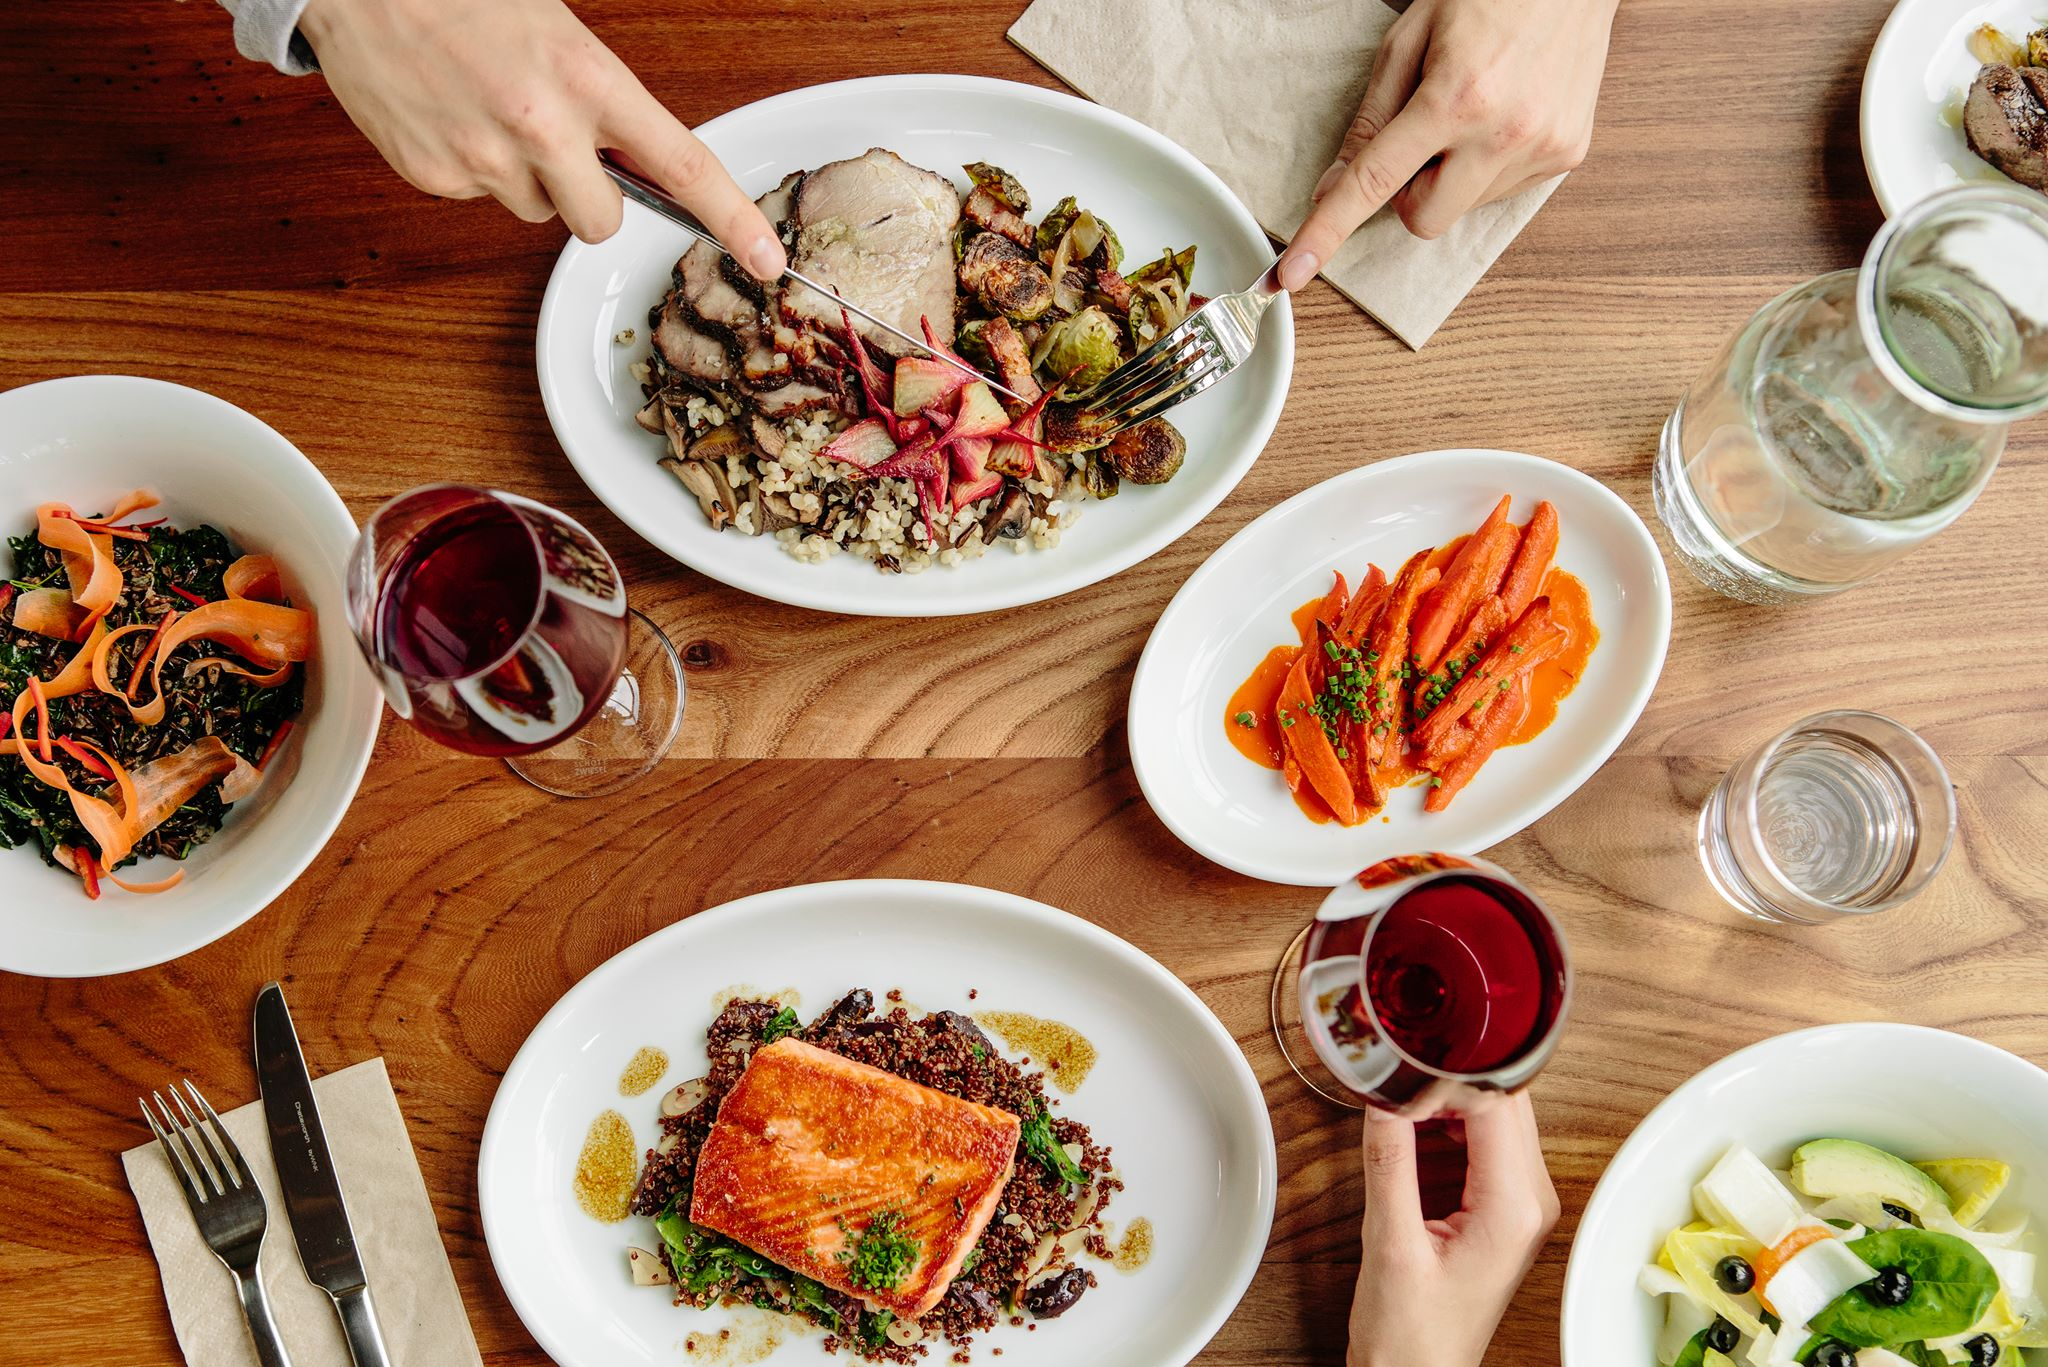 8 Top Spots For Healthy Eating In San Francisco